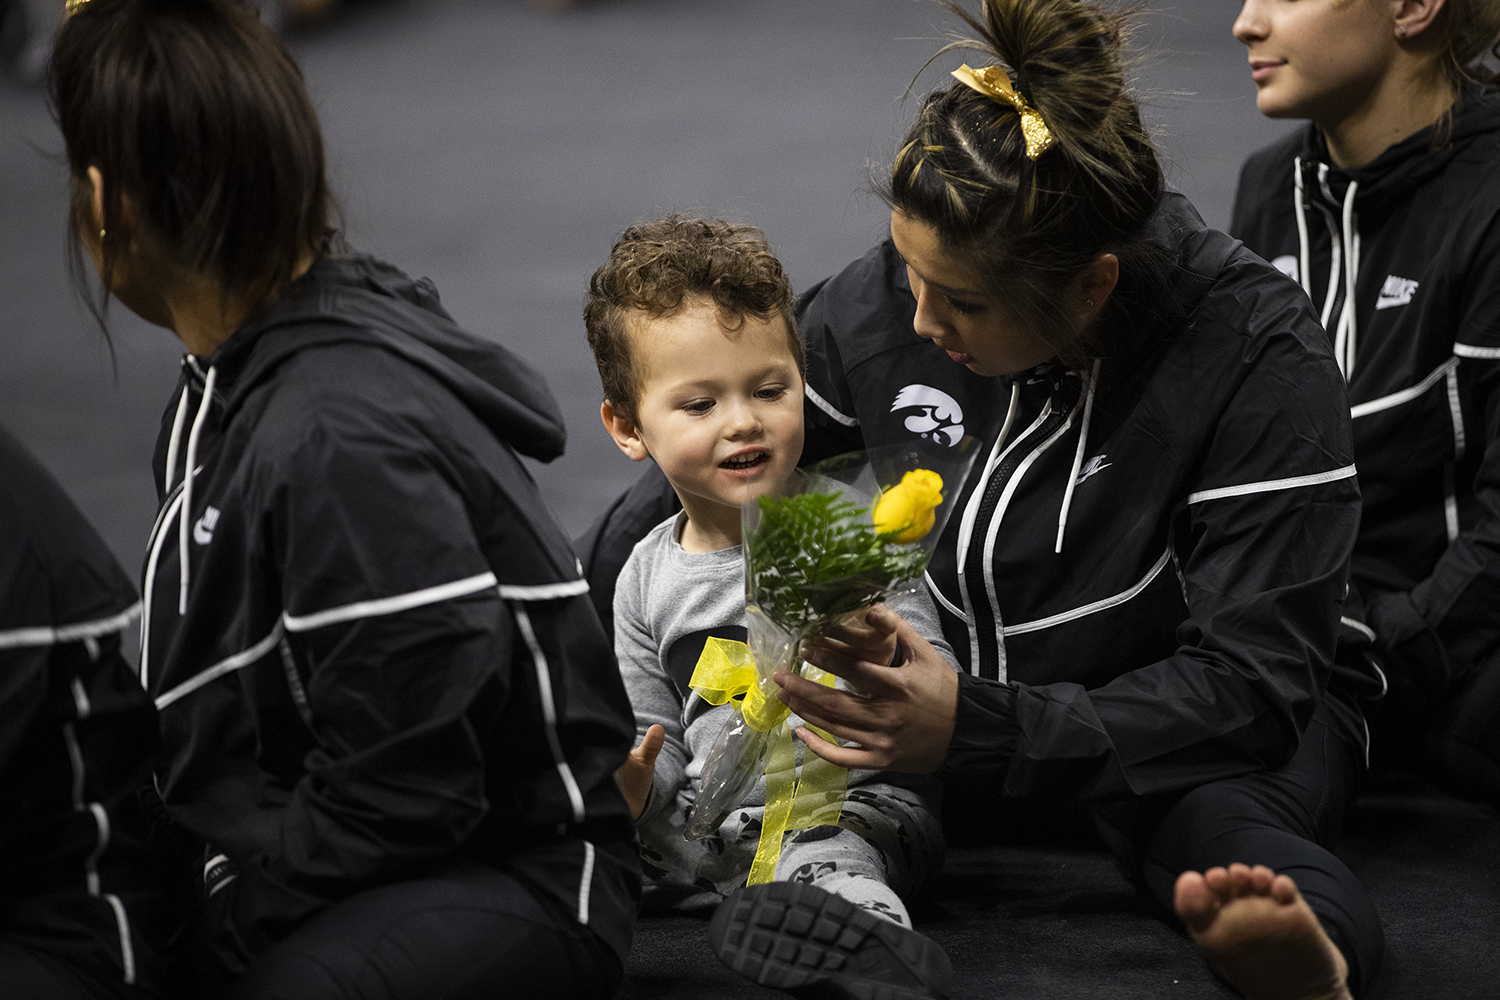 A+young+fan+looks+at+a+flower+with+Iowa+gymnast+Nicole+Chow+during+the+women%27s+gymnastics+meet+vs.+SEMO+at+Carver-Hawkeye+Arena+on+Friday%2C+January+11%2C+2019.+The+GymHawks+defeated+the+Redhawks+194.700-180.925.+